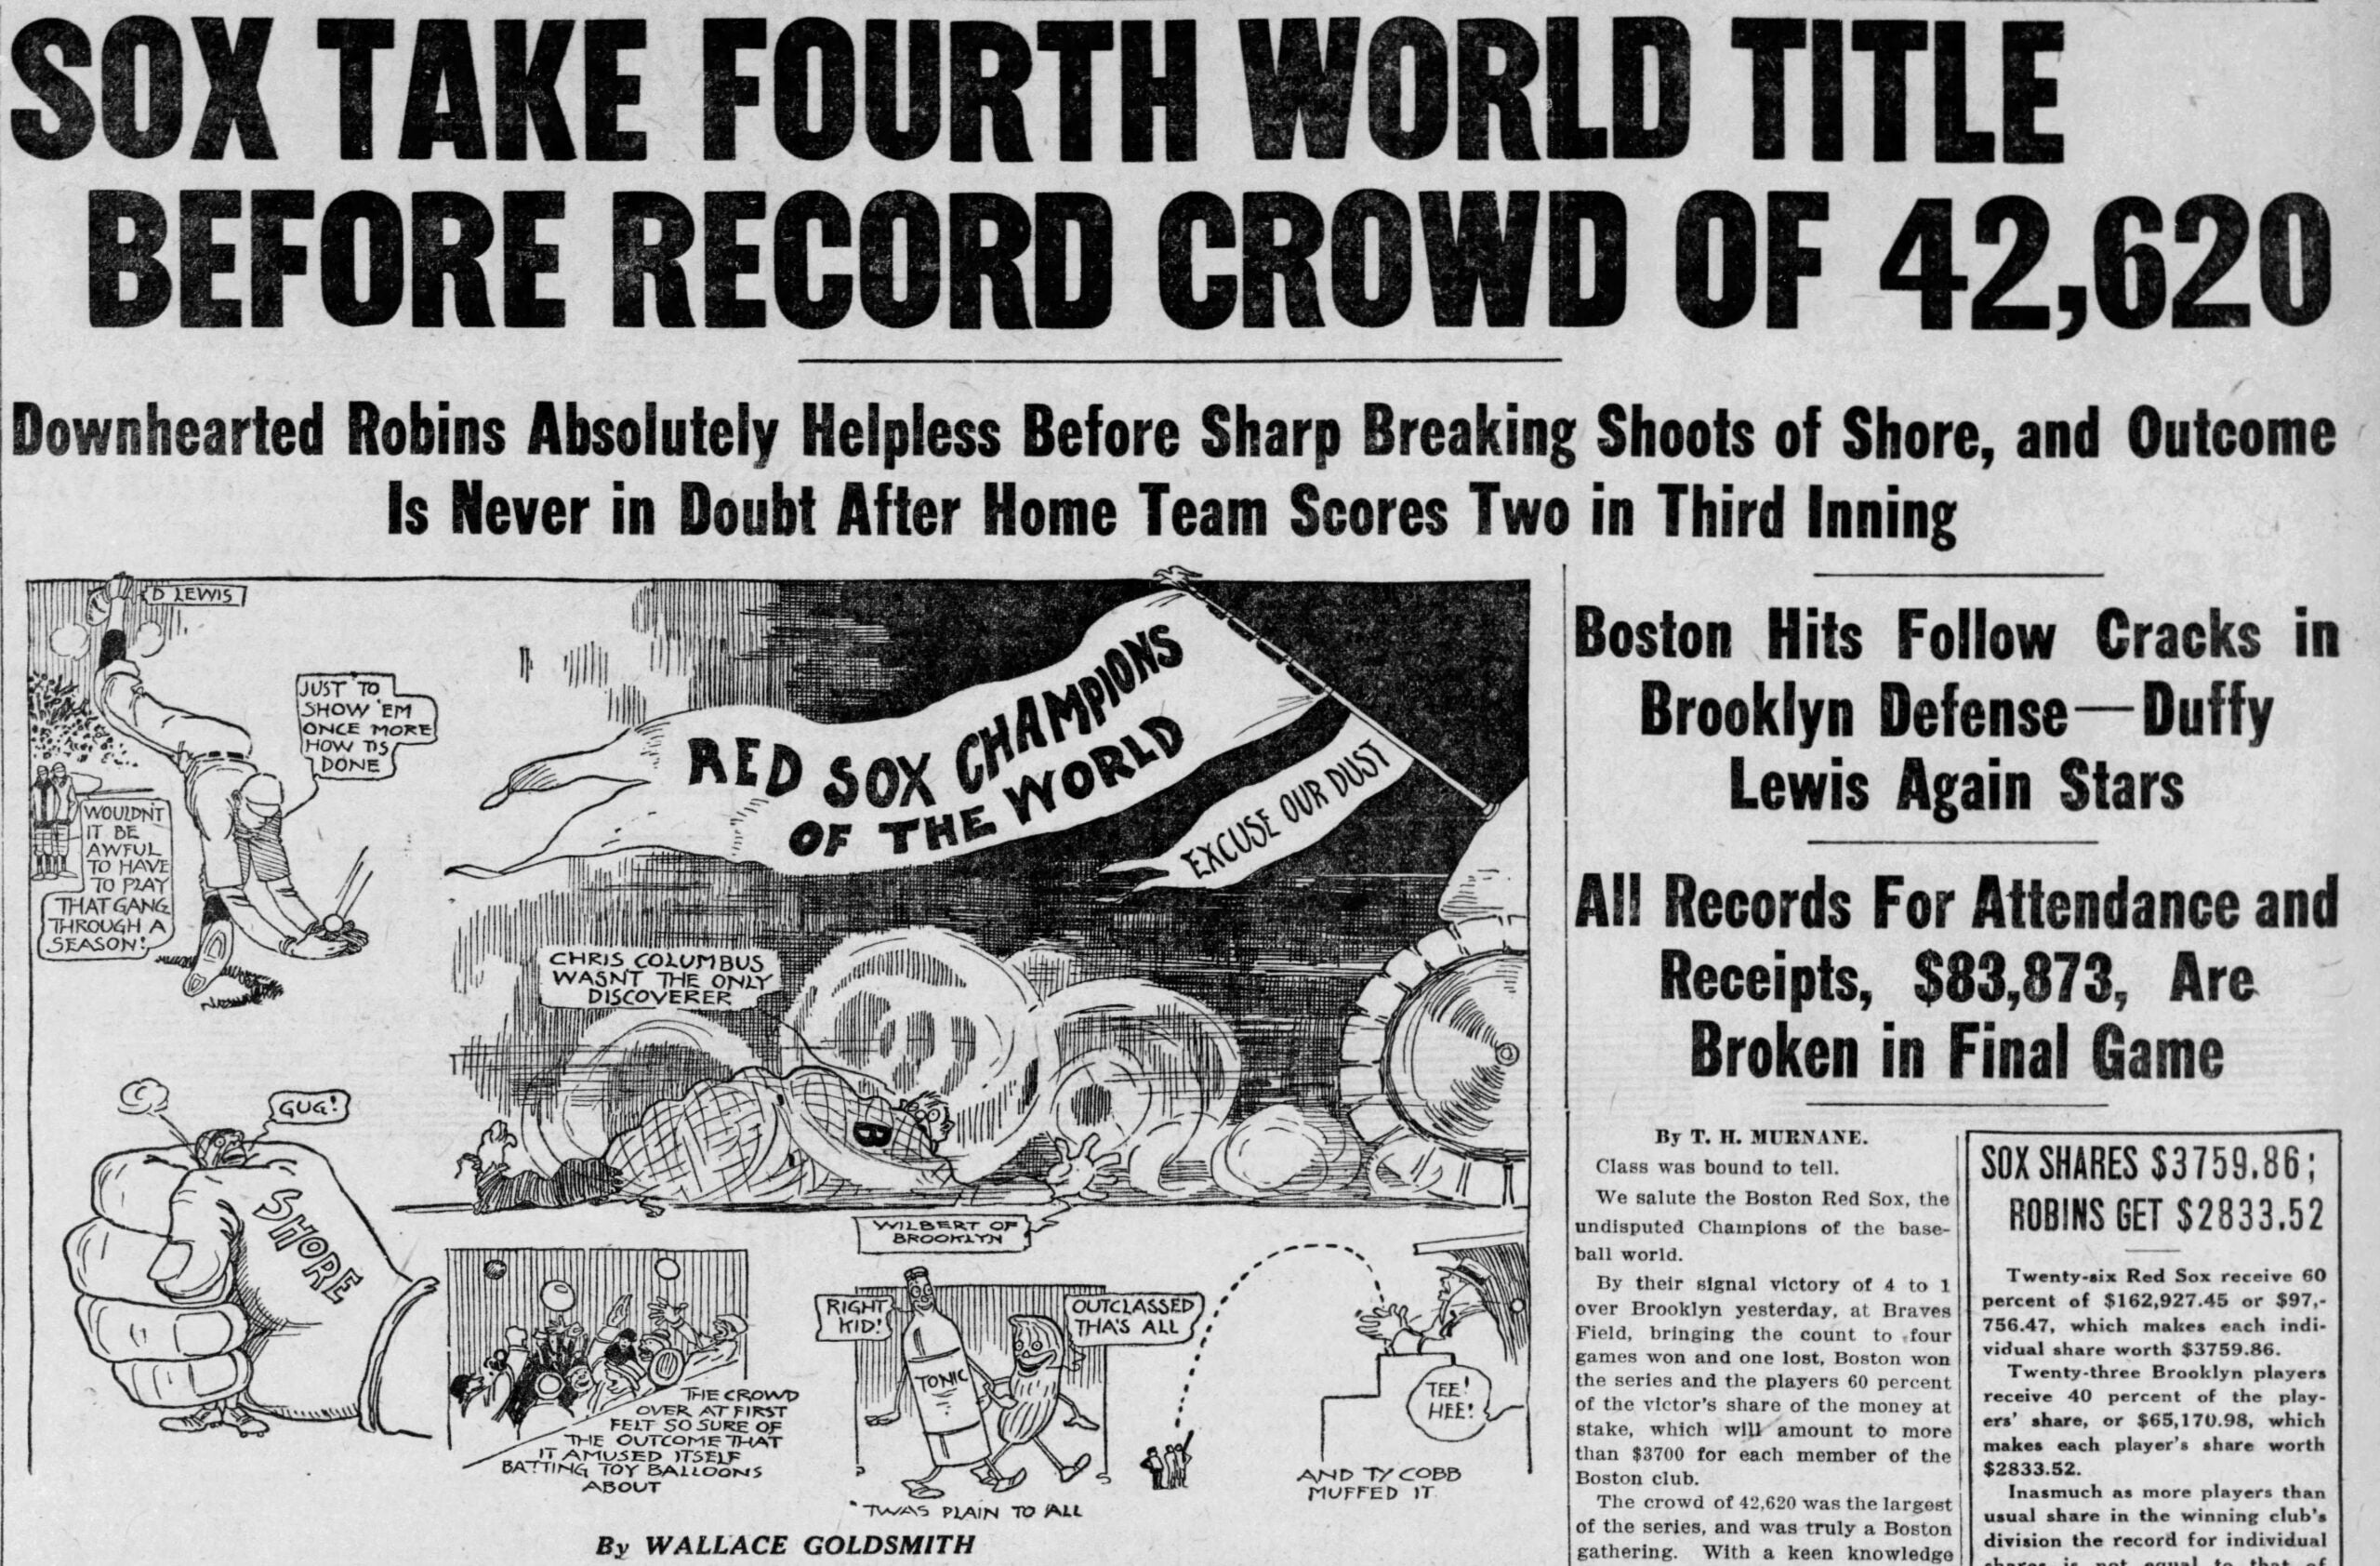 1916 Red Sox World Series